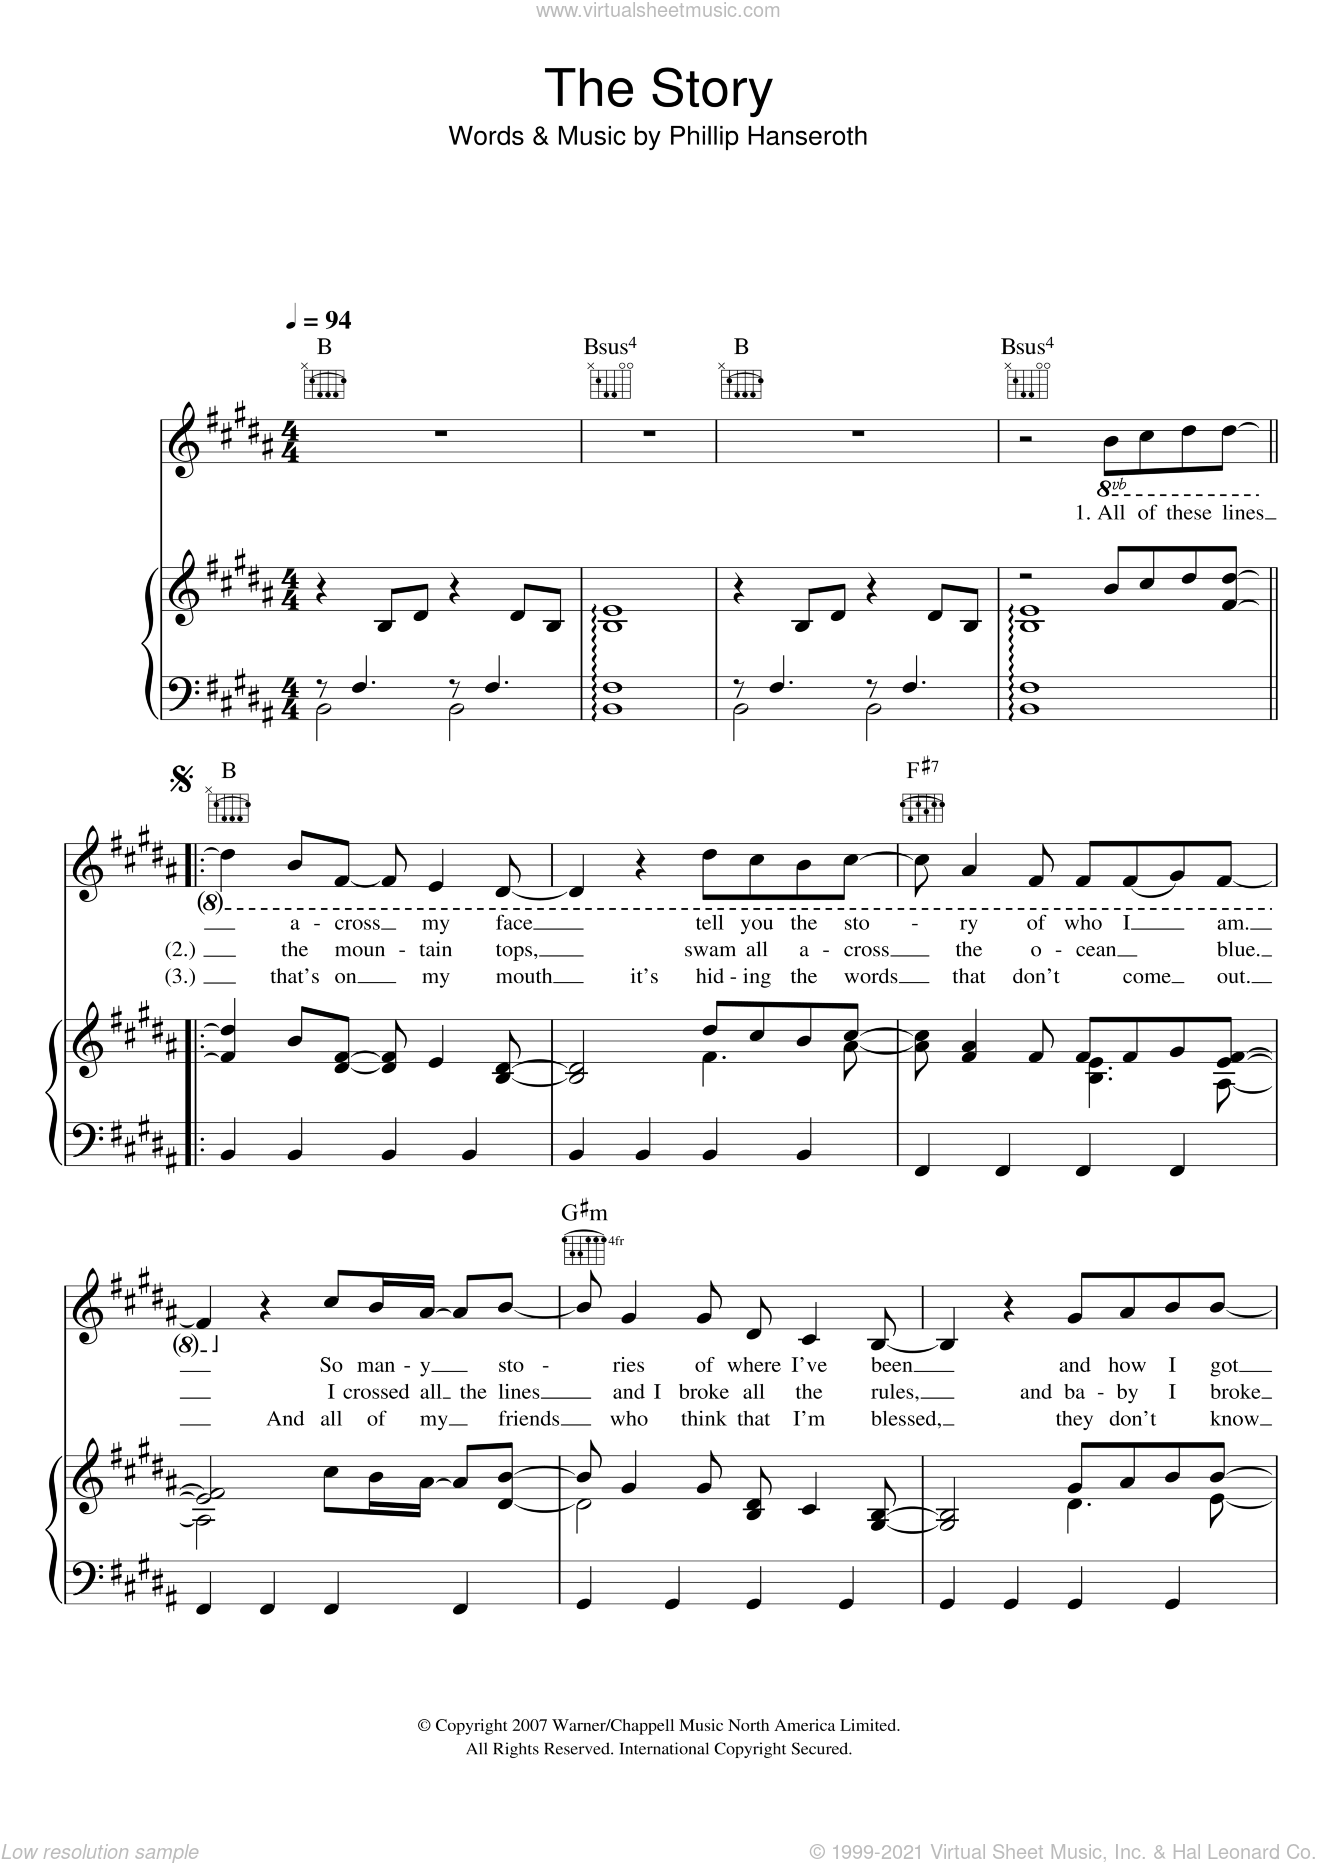 The Story sheet music for voice, piano or guitar by Phillip Hanseroth